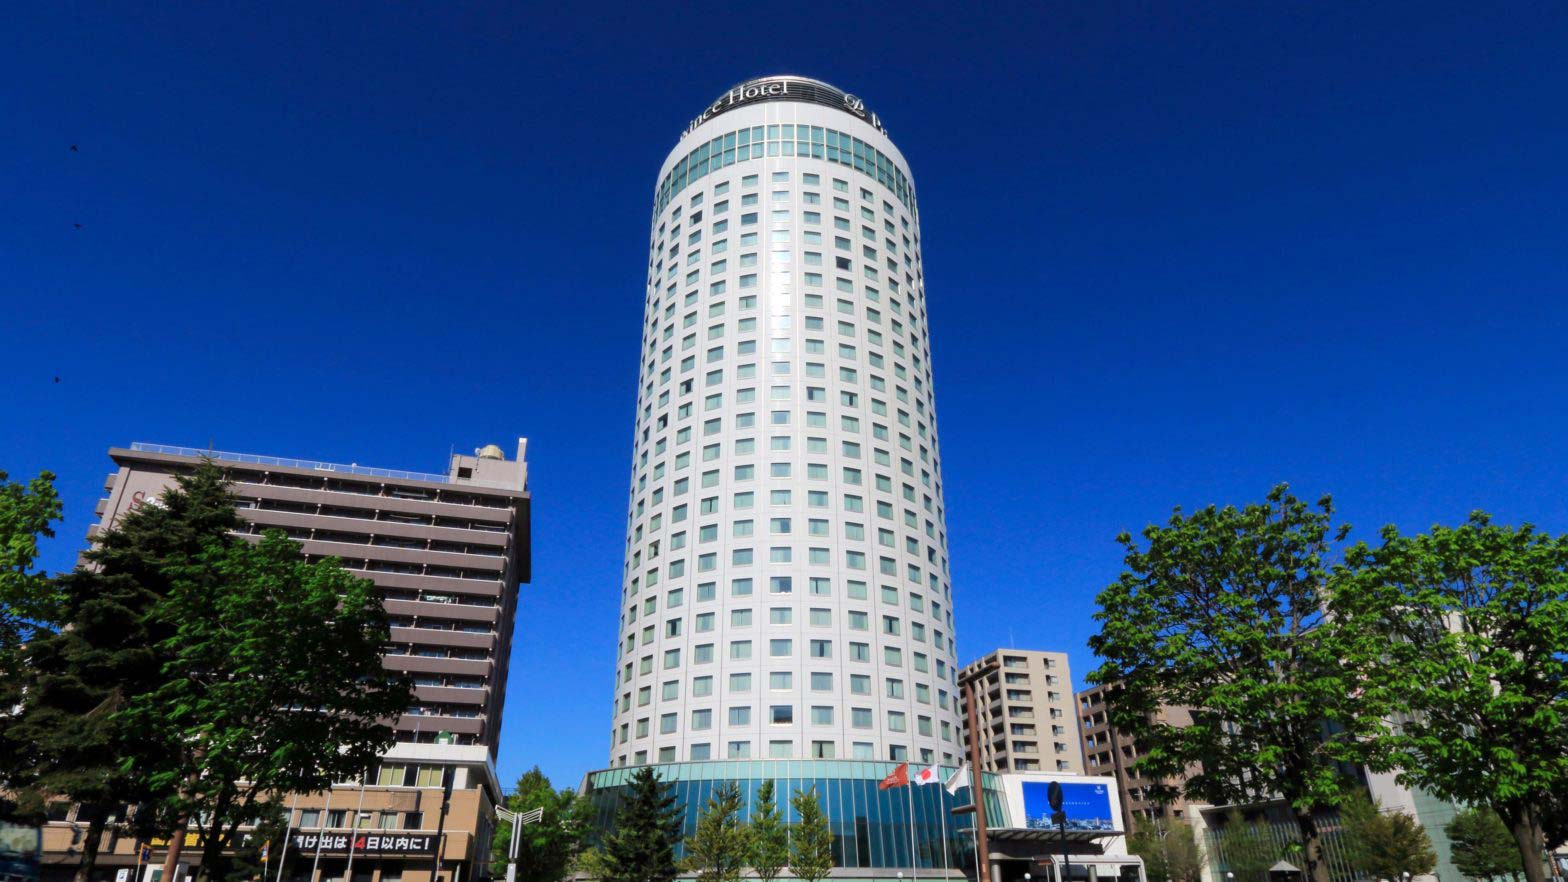 Sapporo Prince Hotel [Tower 15th Anniversary Plan]